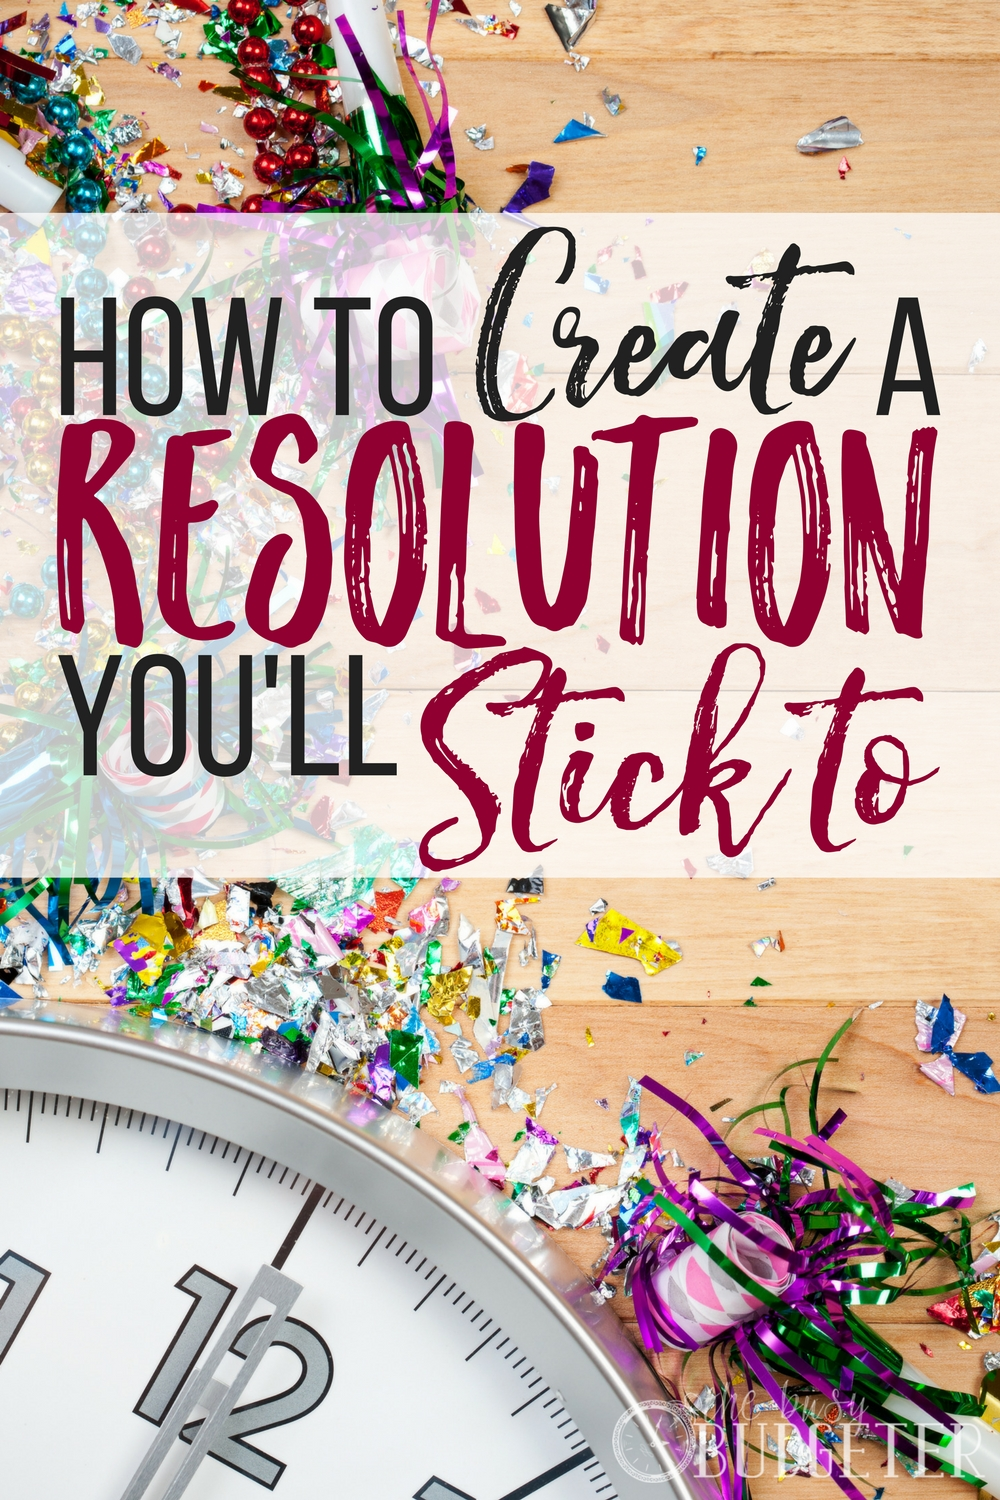 Create a Resolution You'll Stick To - Yes! I can never keep my NYE resolutions, especially ones about money or weight loss. Then I always feel terrible about it. But these ideas make a lot of sense and I might even save some money!